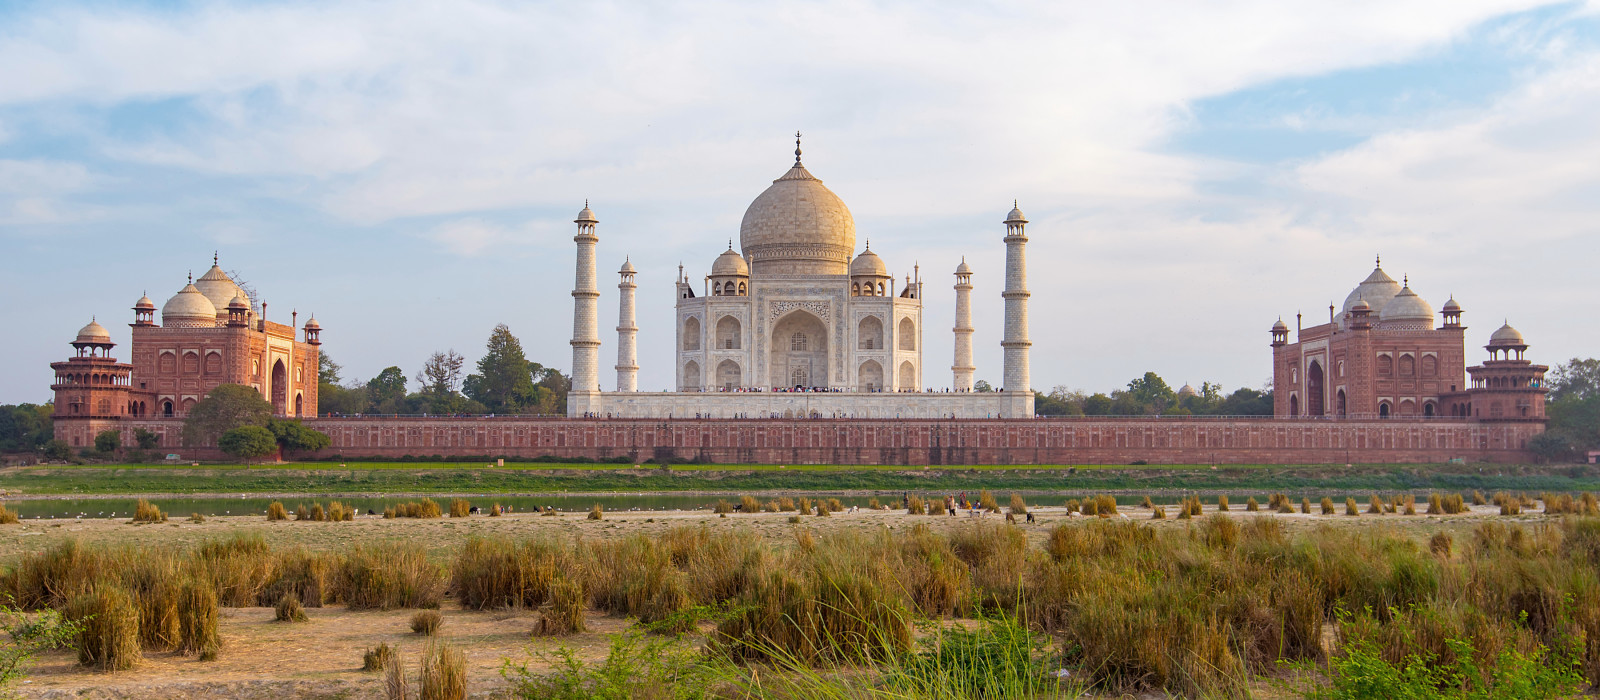 Breathtaking view of Taj Mahal from distance, Agra, India